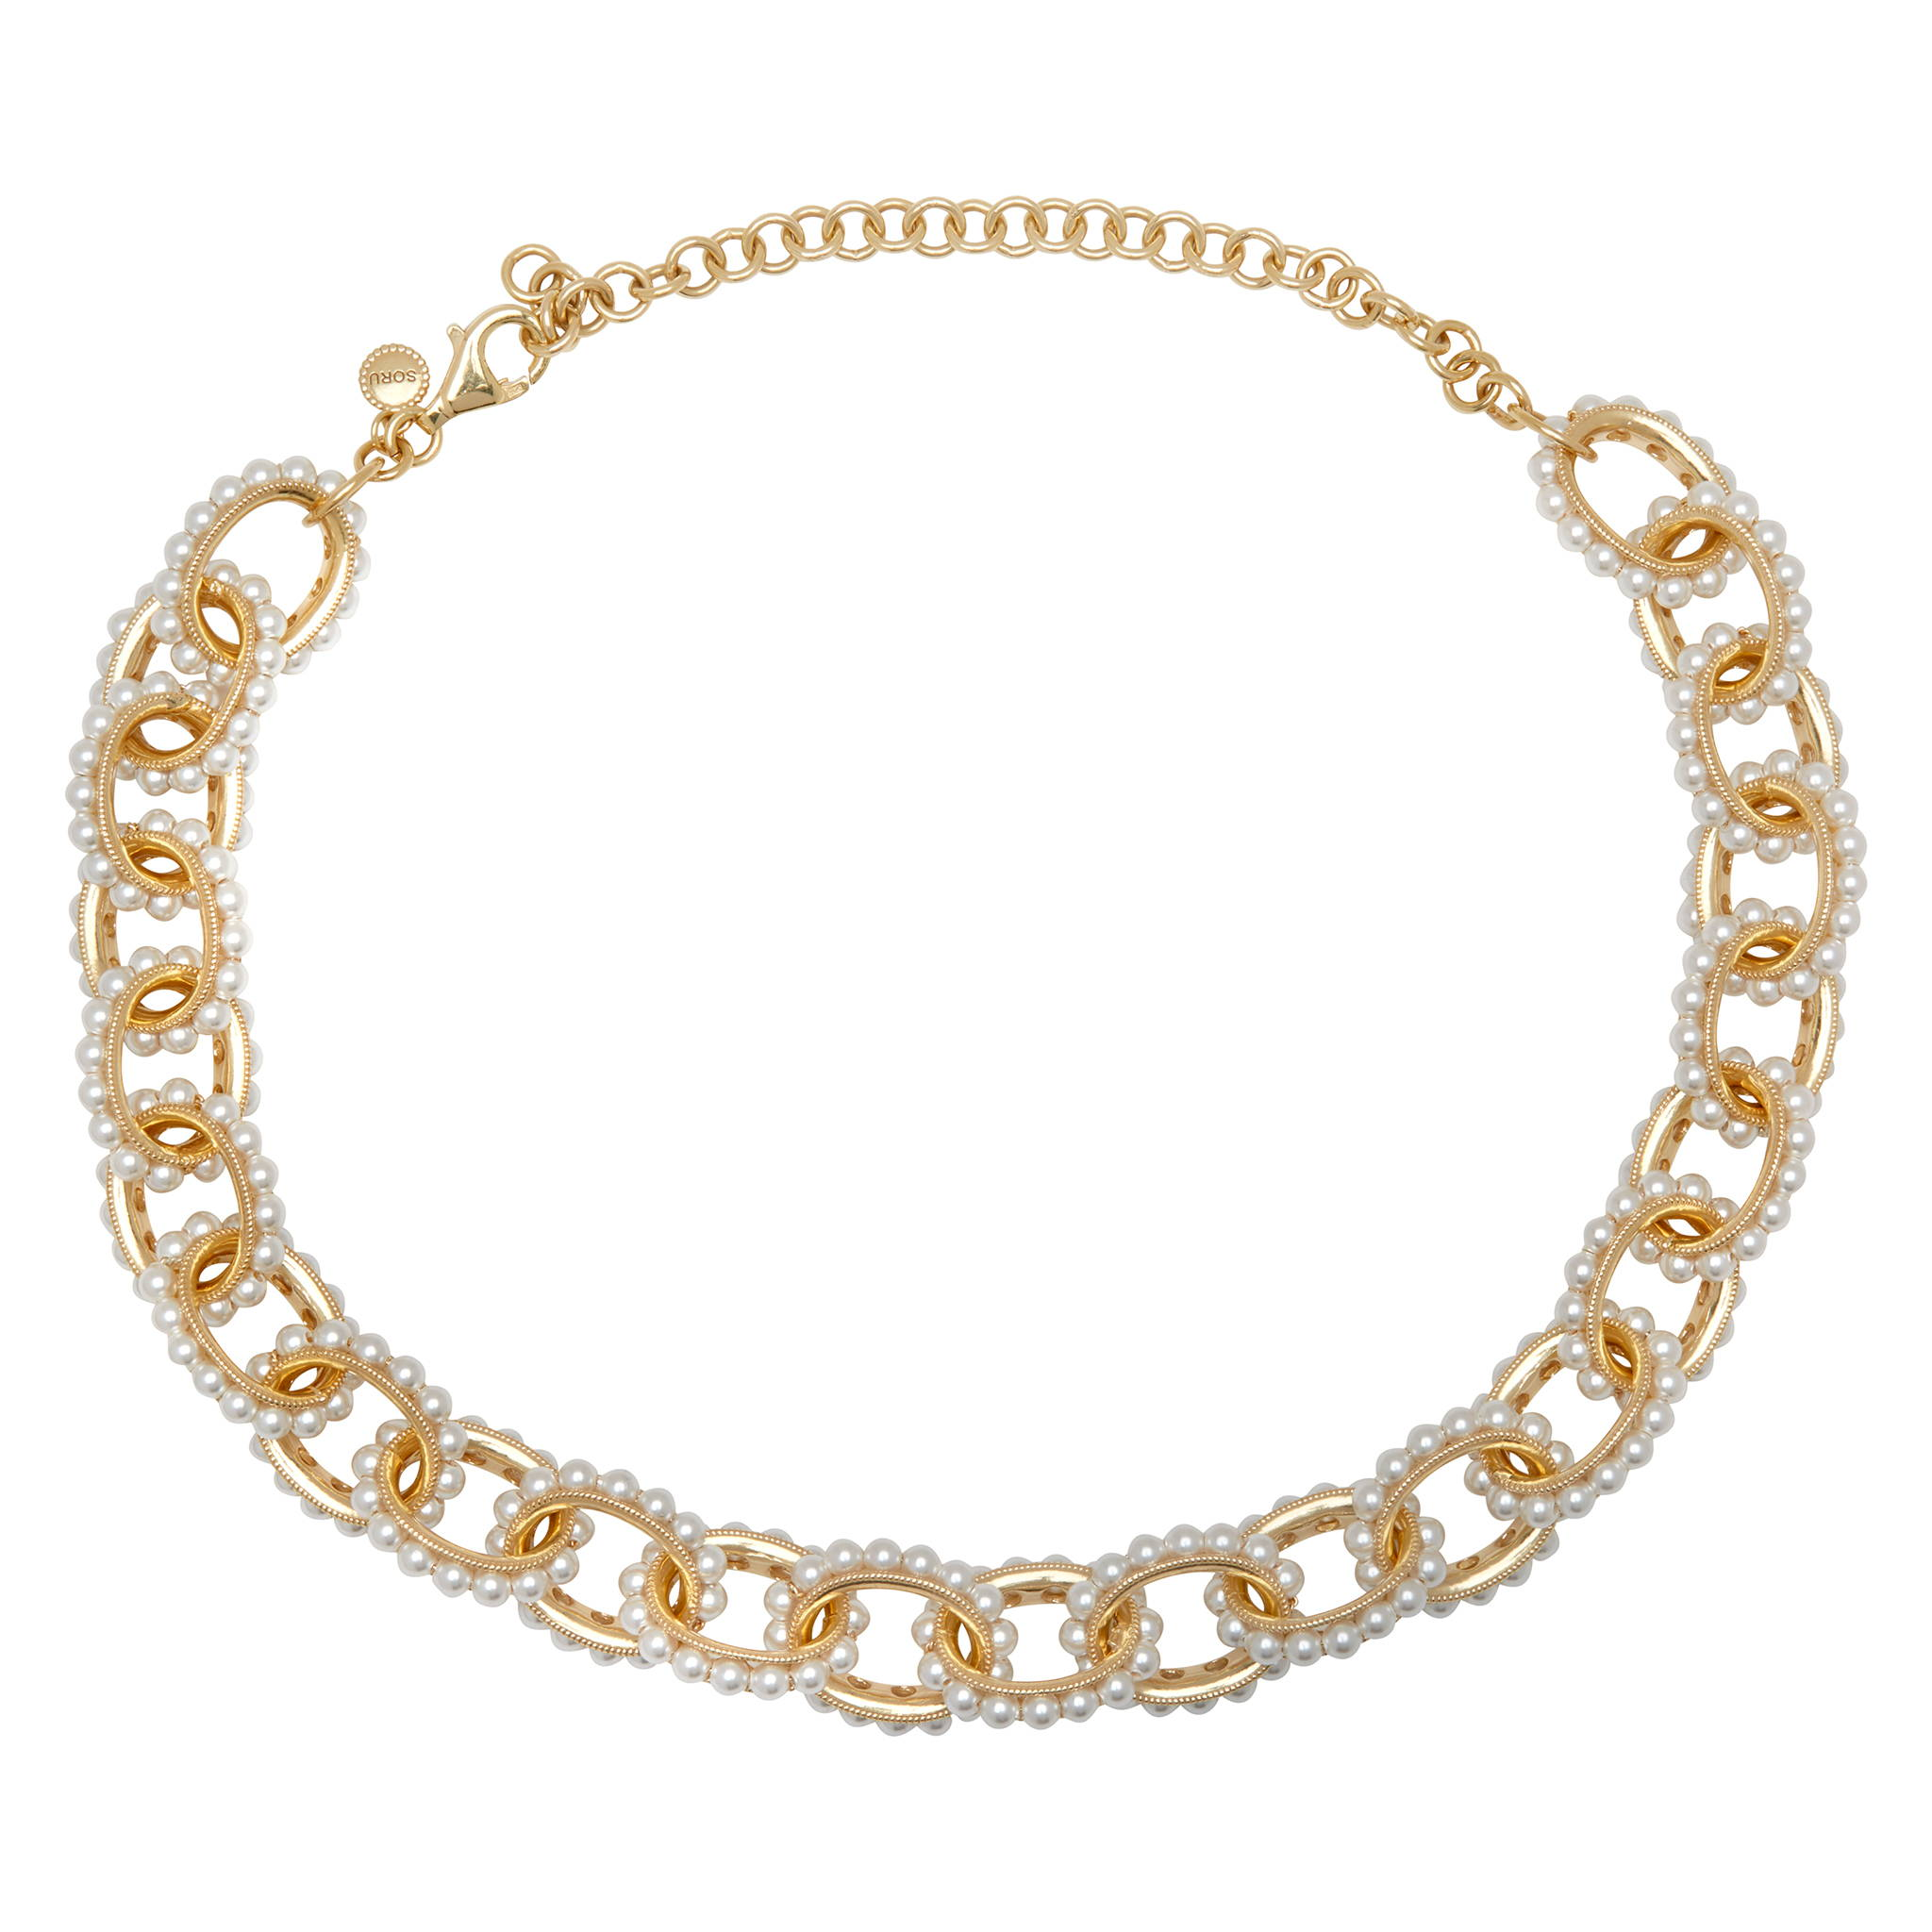 SORU JEWELLERT MONDELLO NECKLACE, SORU PEARL LINK NECKLACE